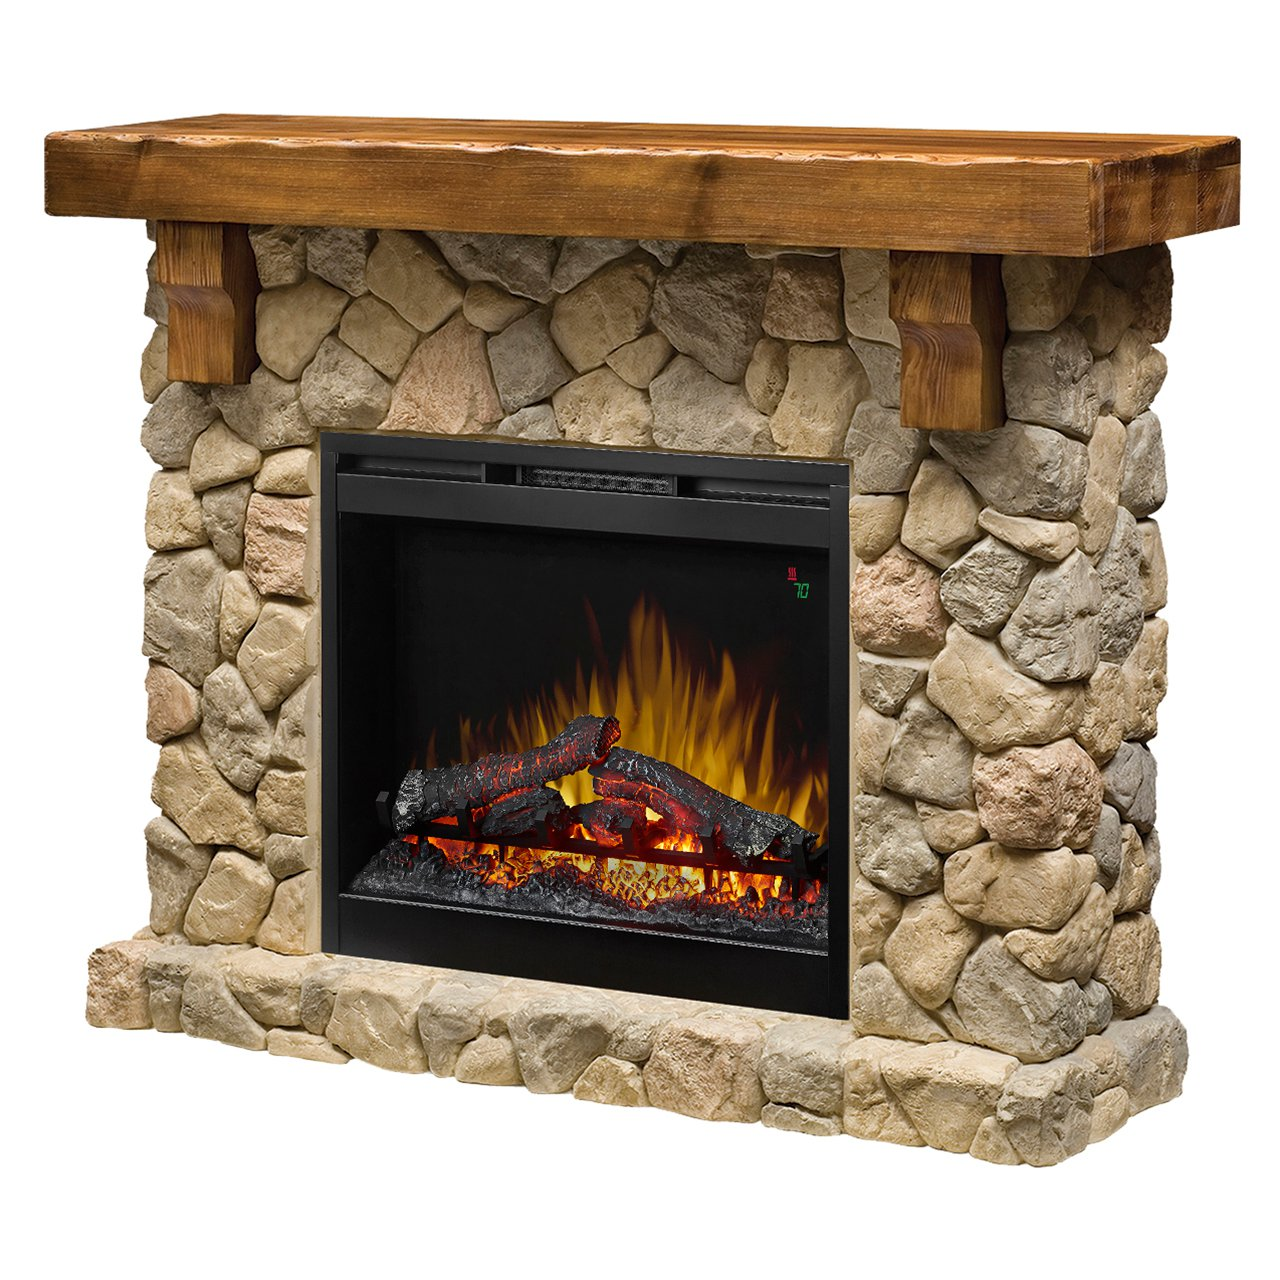 Dimplex fieldstone smp 904 st electric fireplace wall for Diy rock wall fireplace